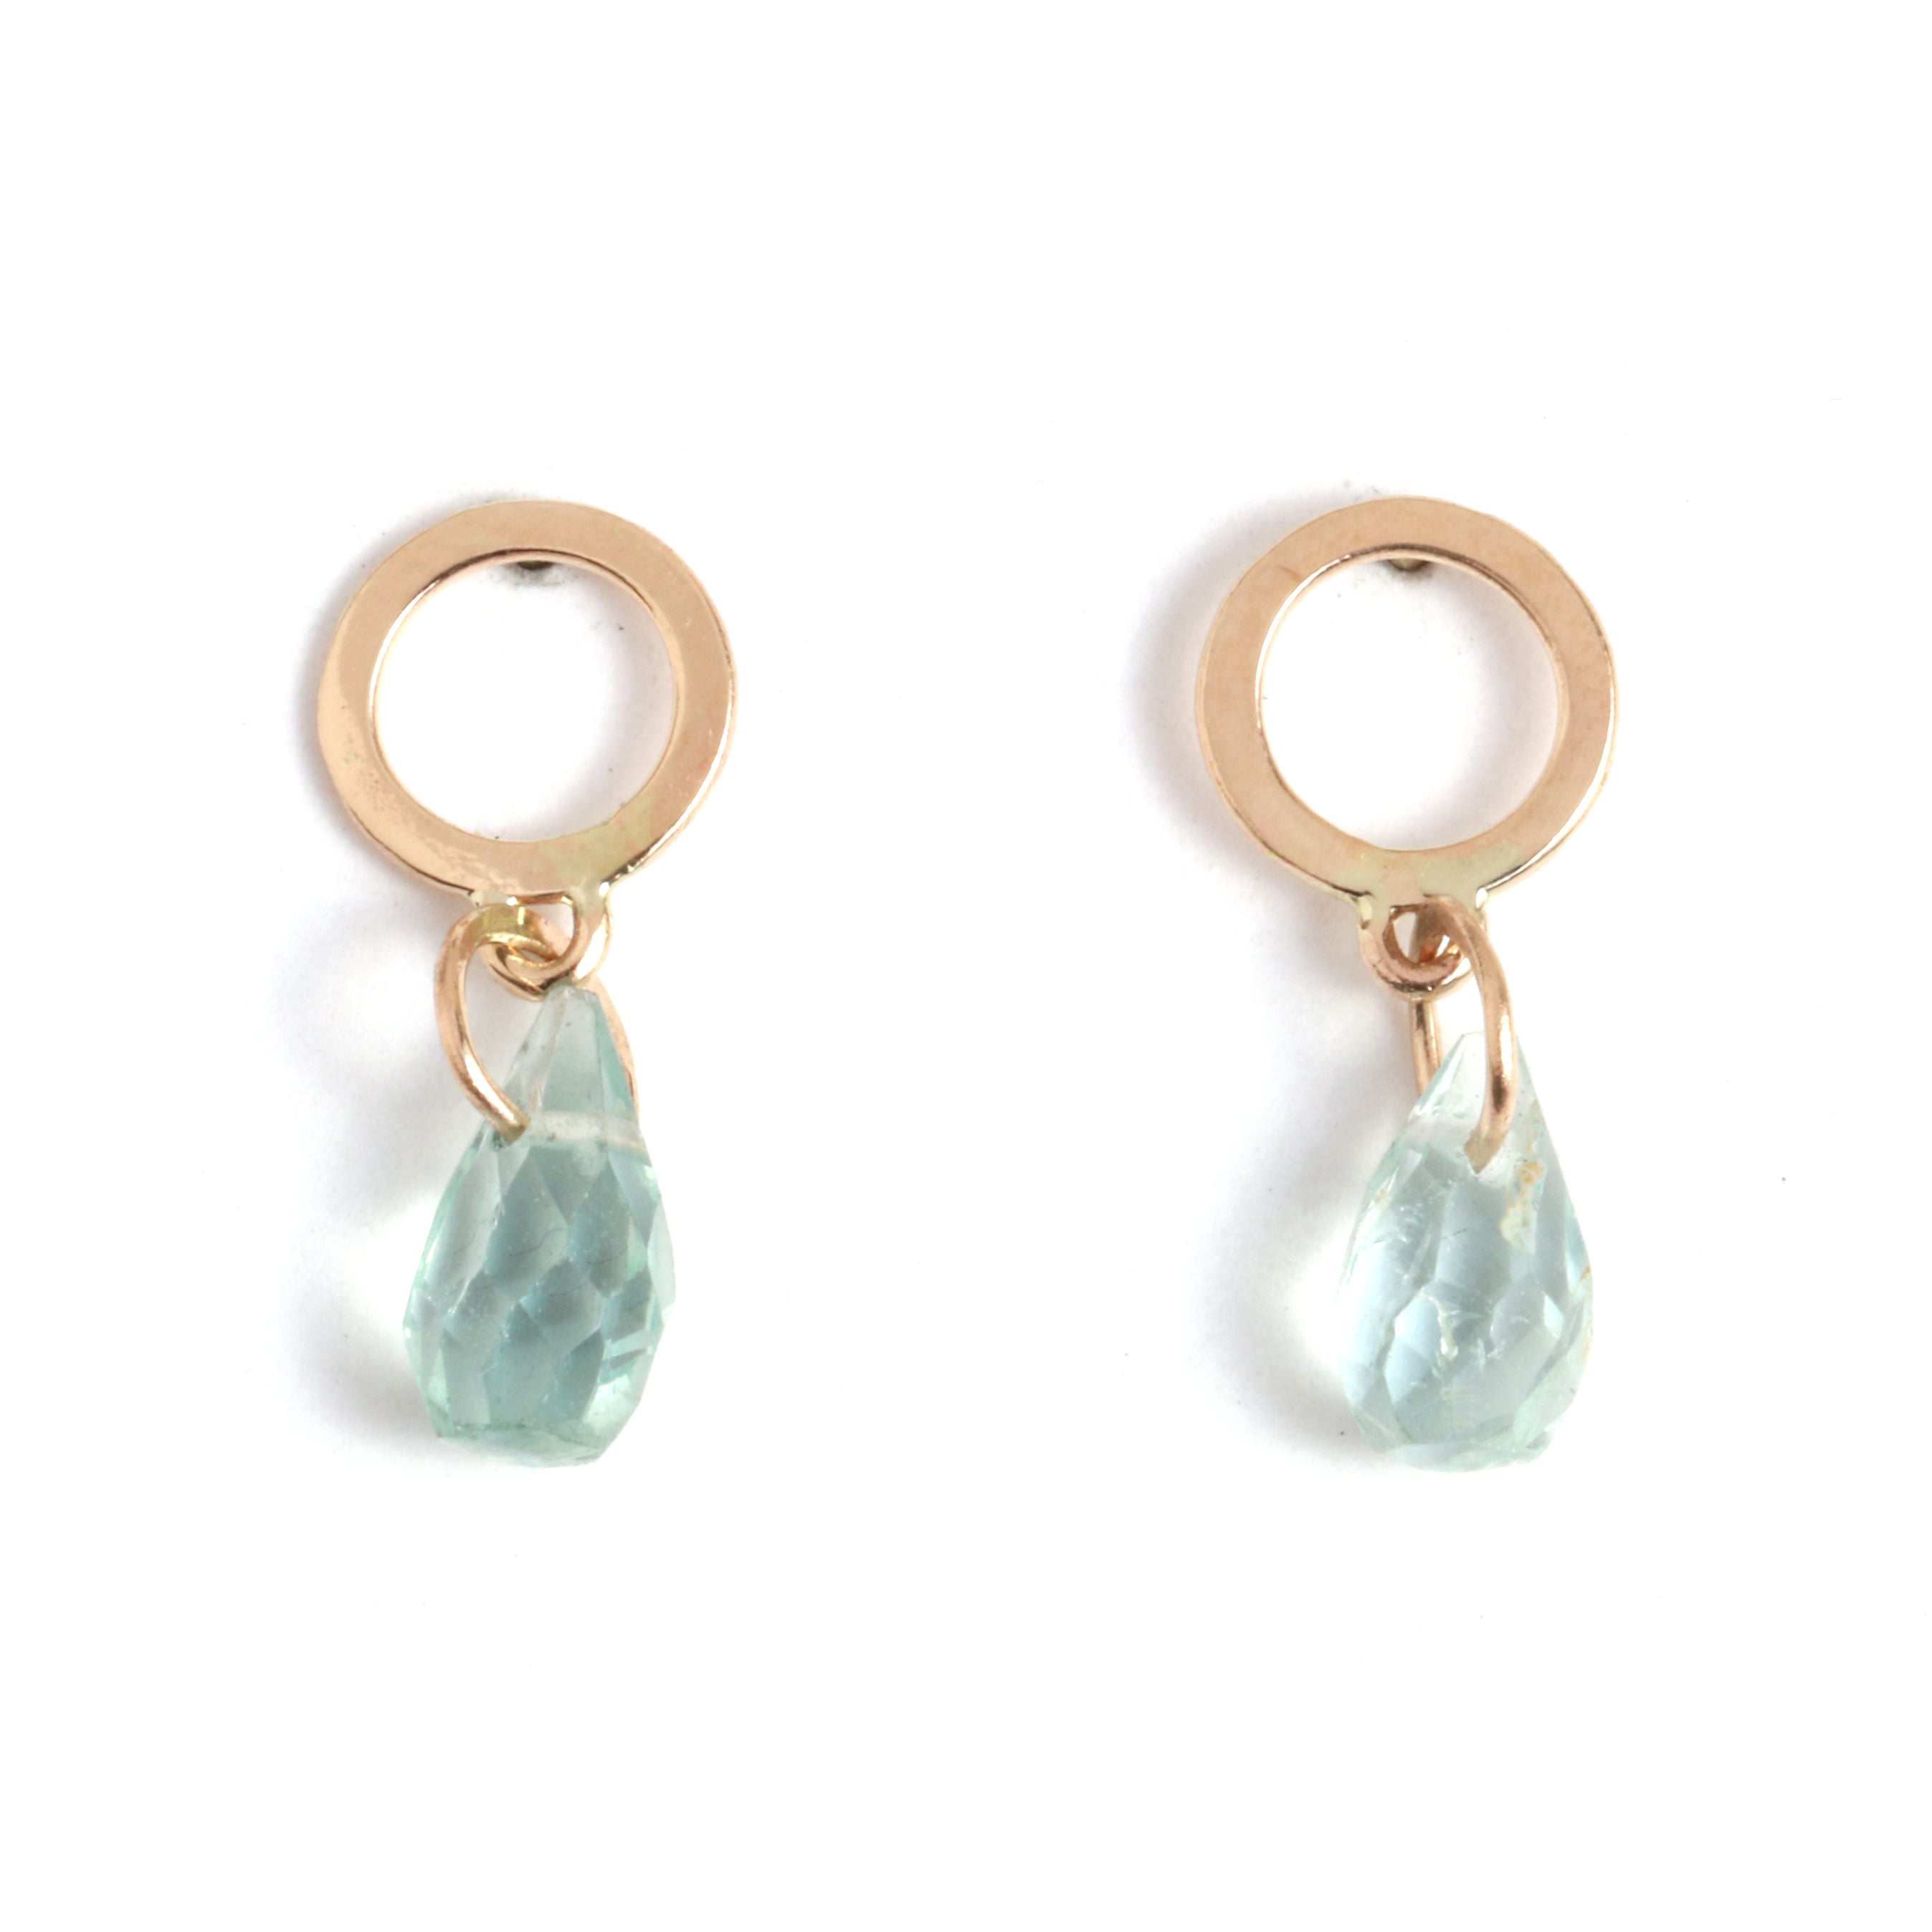 Flat Circle Stud Earrings with Aquamarine Drops - Melissa Joy Manning Jewelry